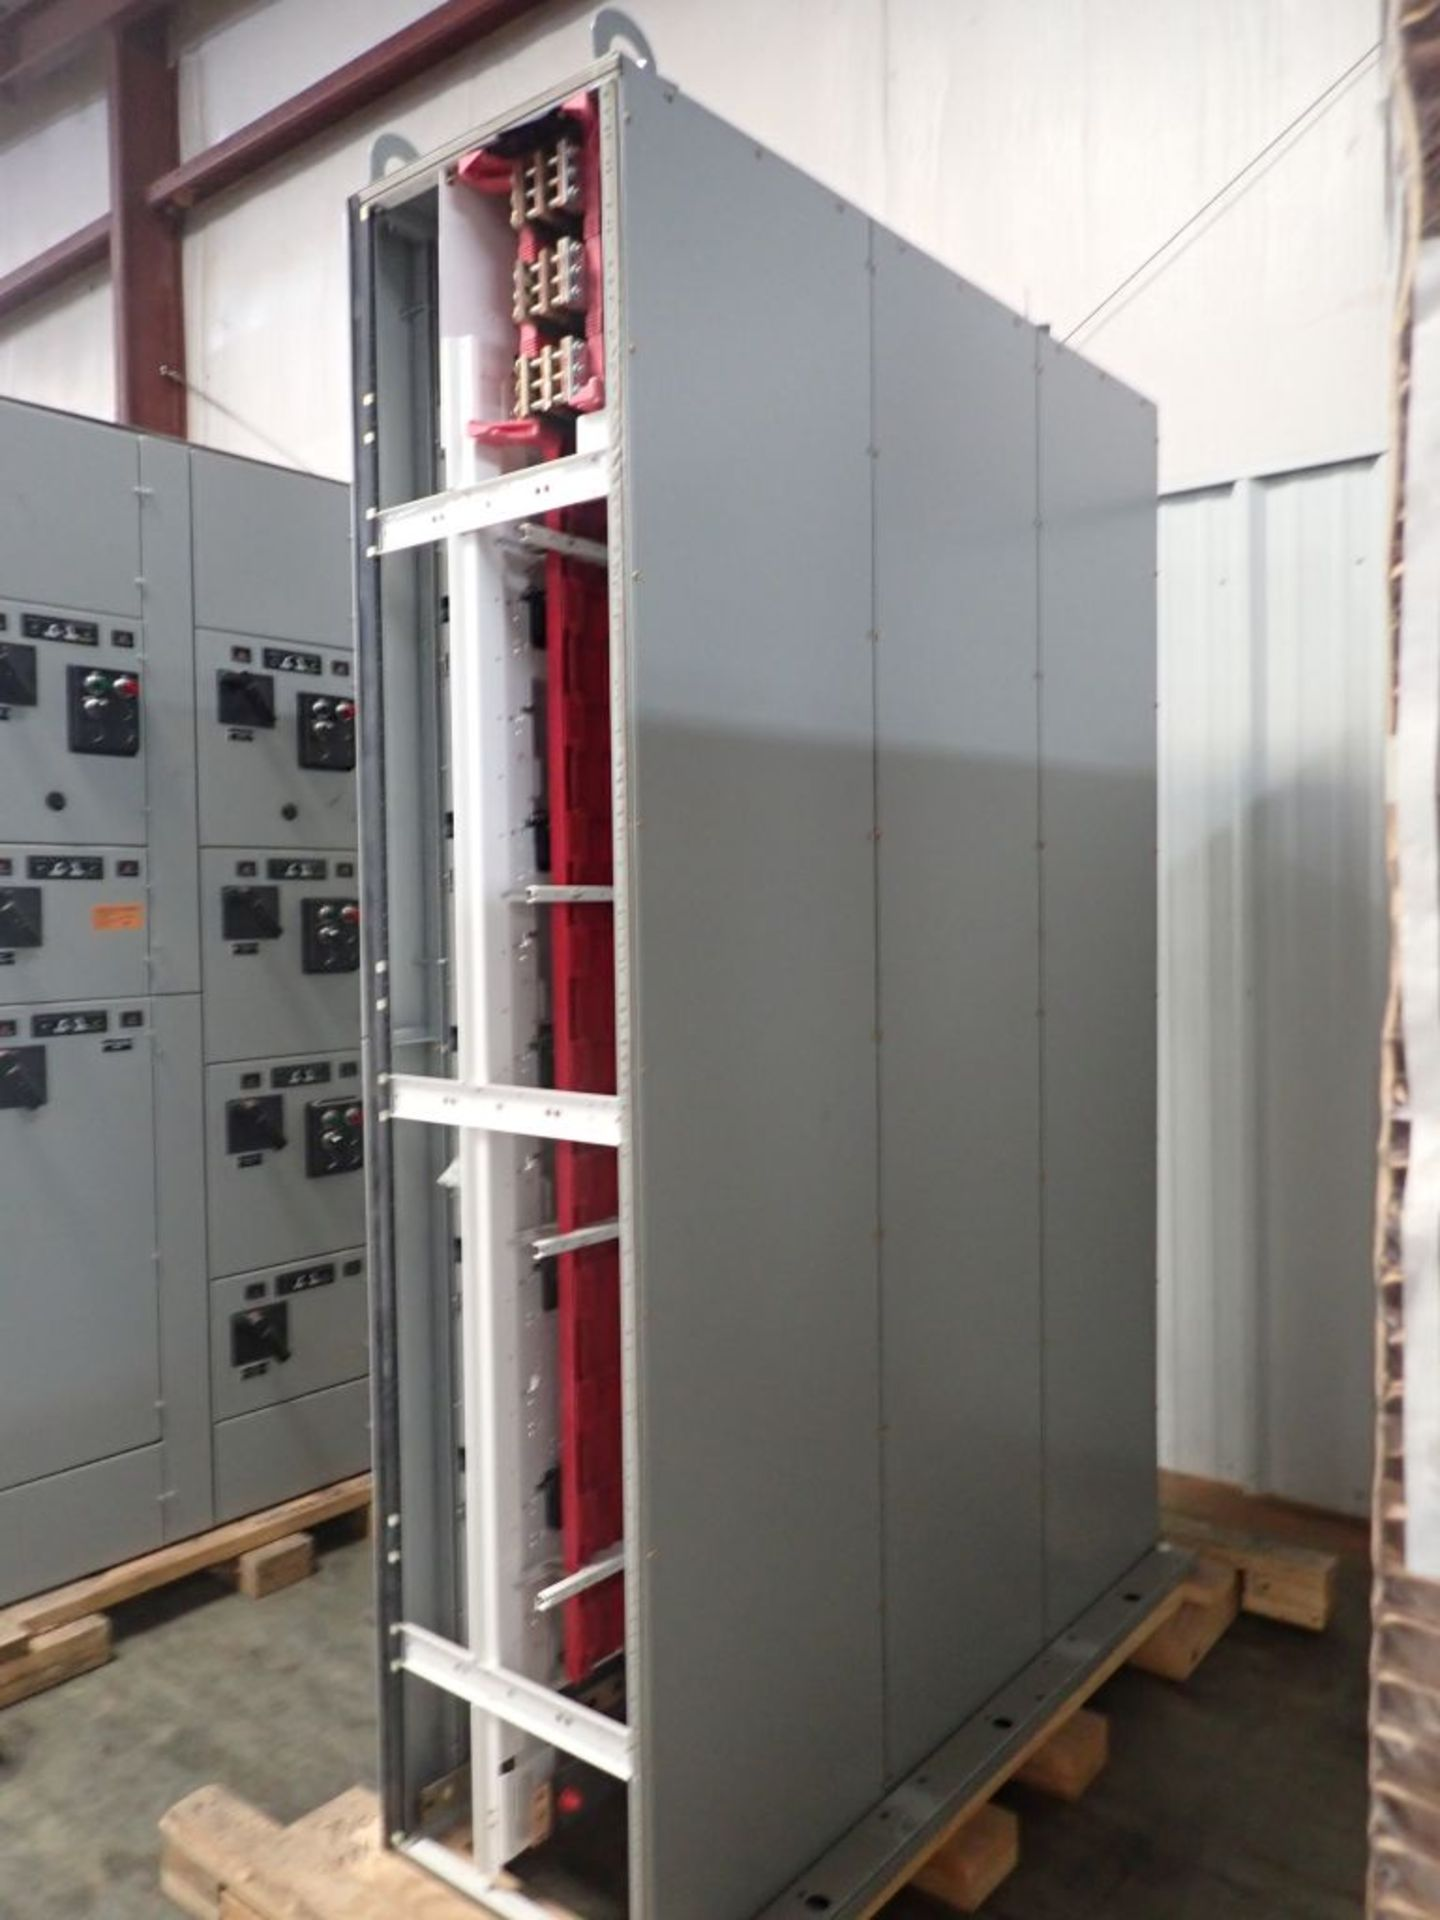 Eaton Freedom Flashgard Motor Control Center   (3) F216-15A-10HP; (1) FDRB-125A, with 150A - Image 3 of 57